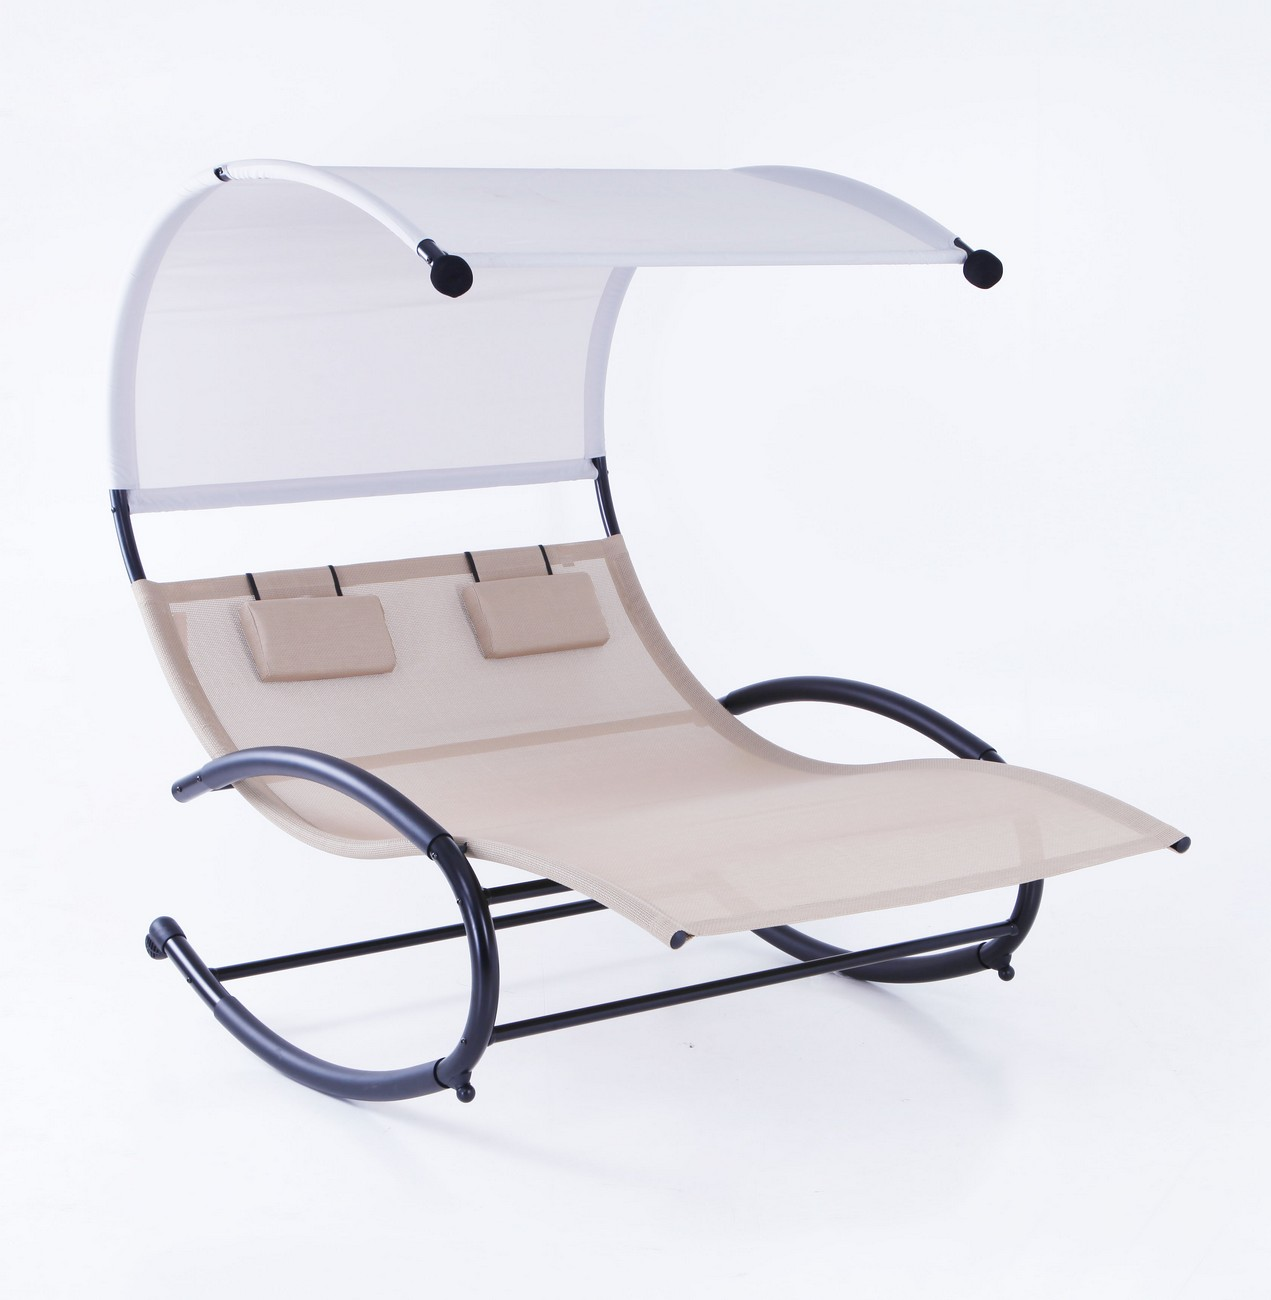 Chaise Rocking Chair Belleze Double Chaise Rocker Patio Furniture Chair Canopy Pool Swing Rocker Steel Beige